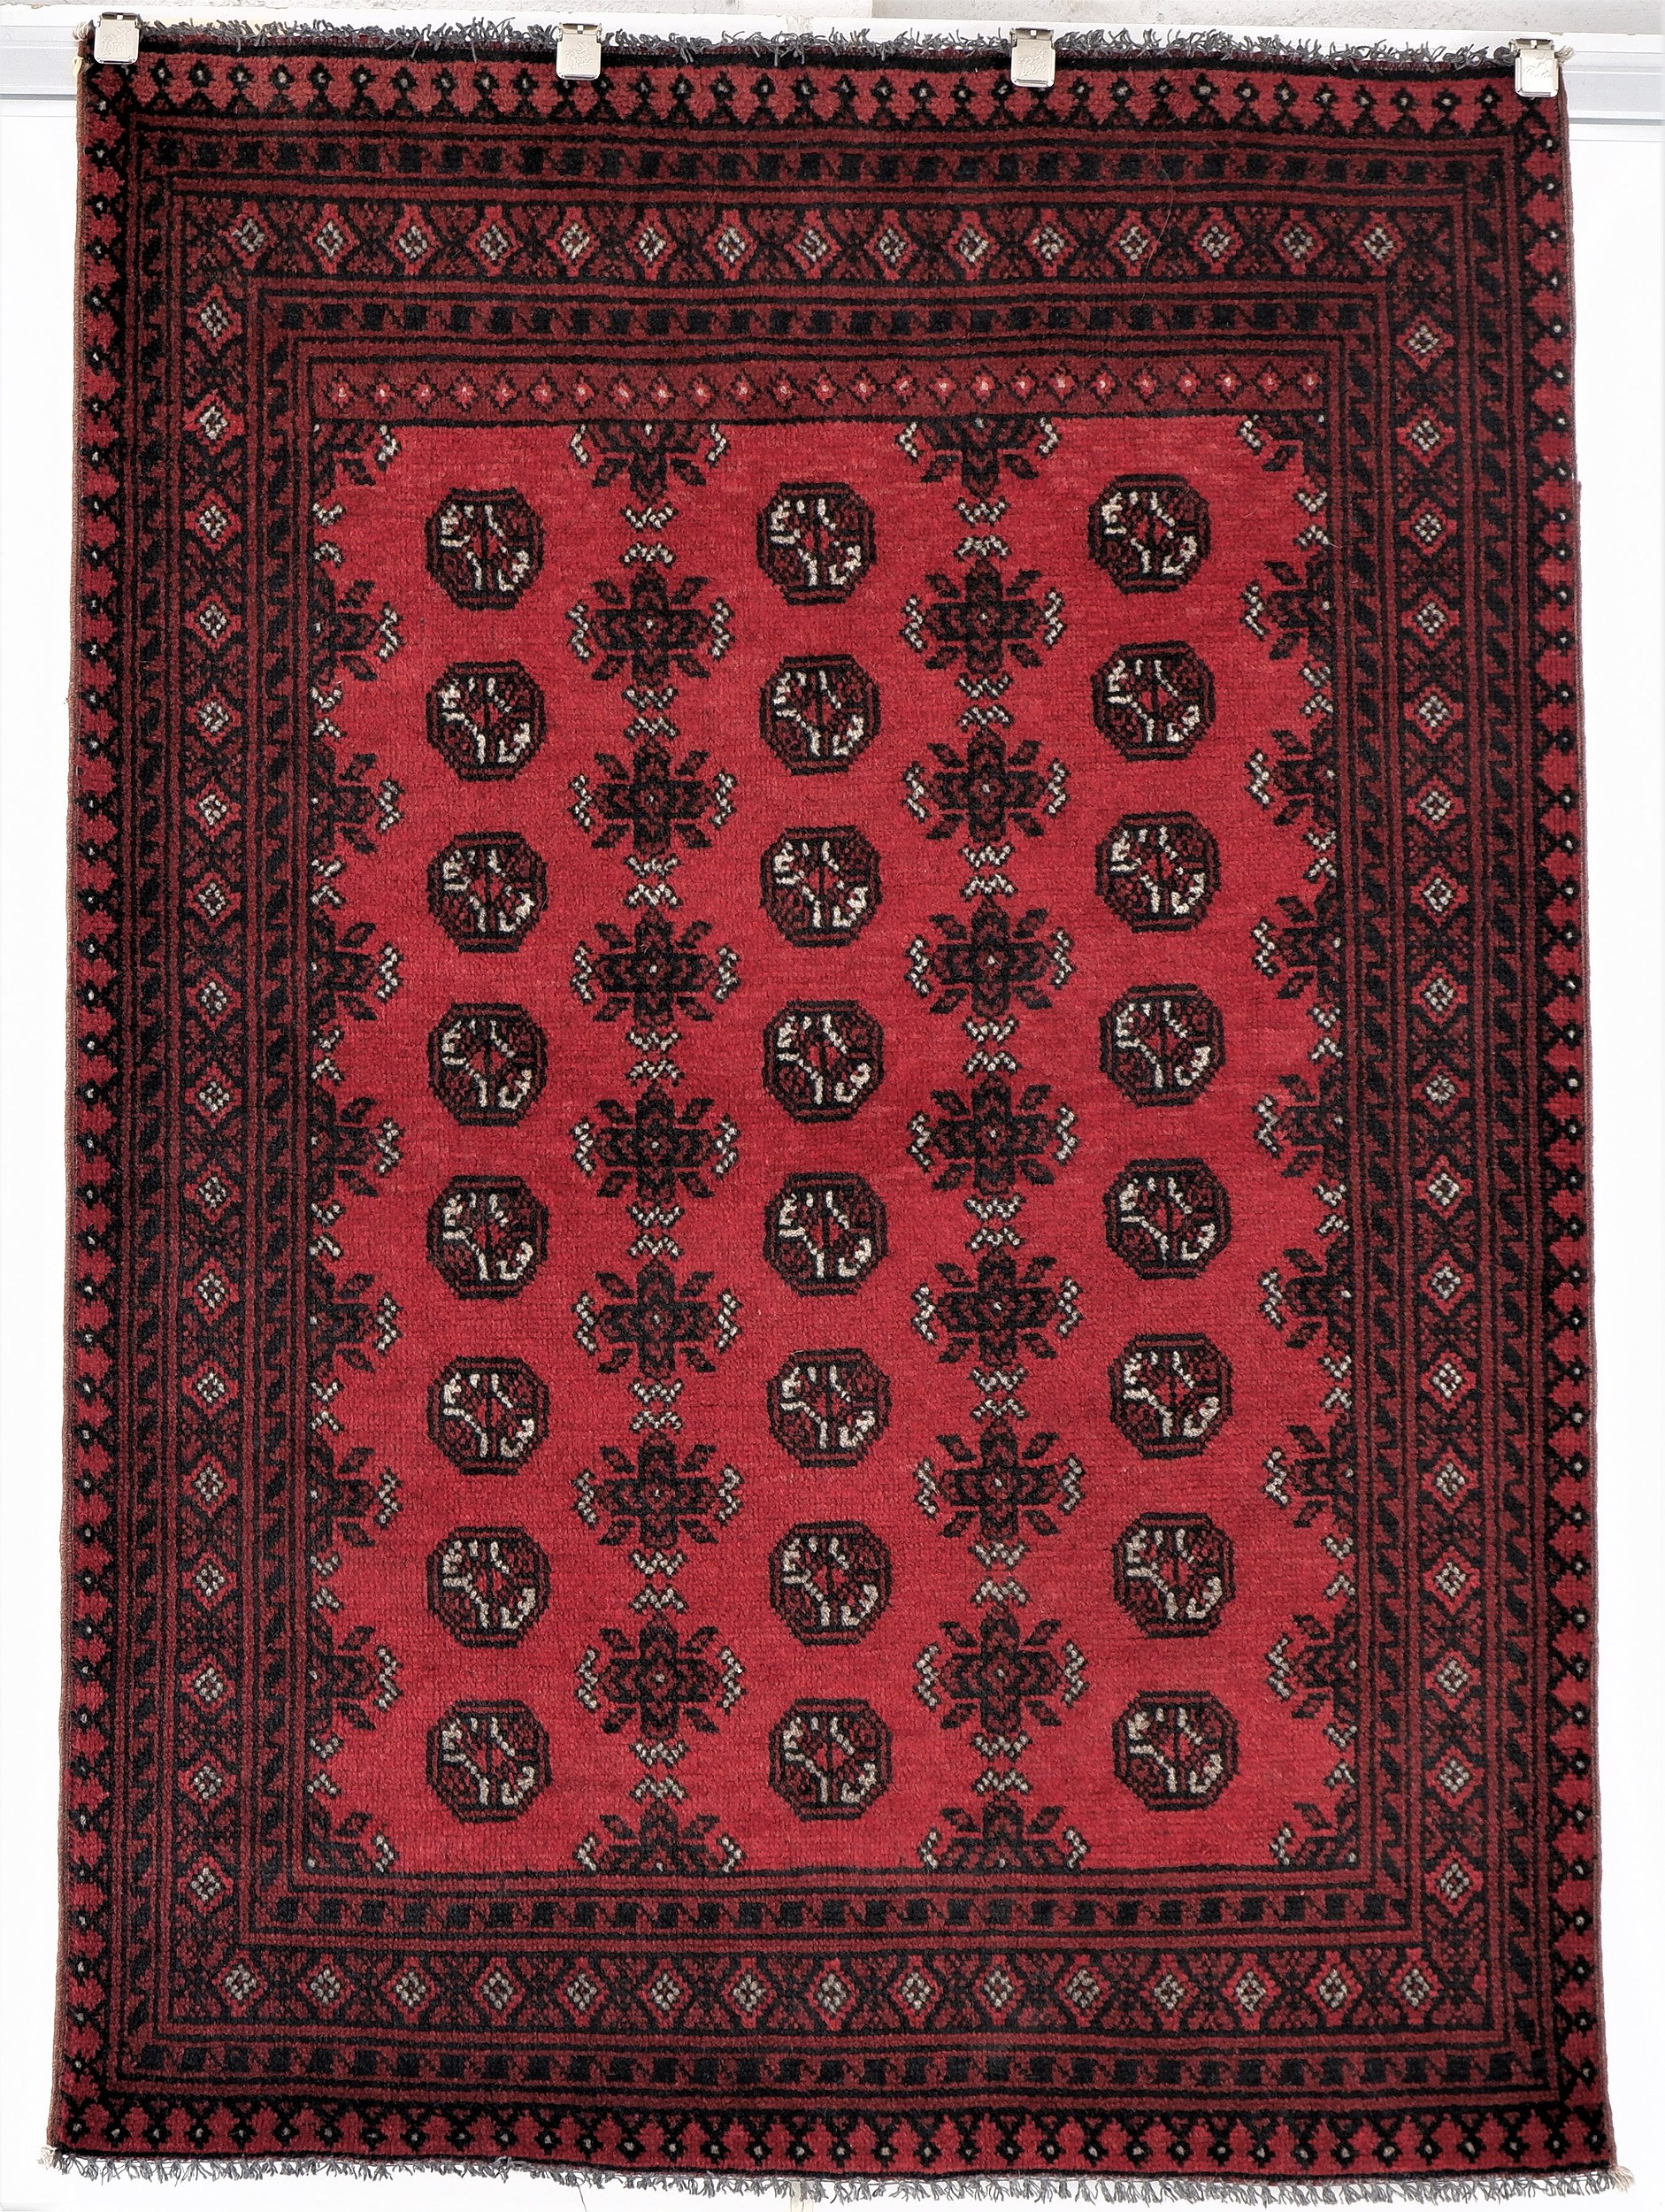 'Afghan Bokhara Hand Knotted Pure Wool Rug '